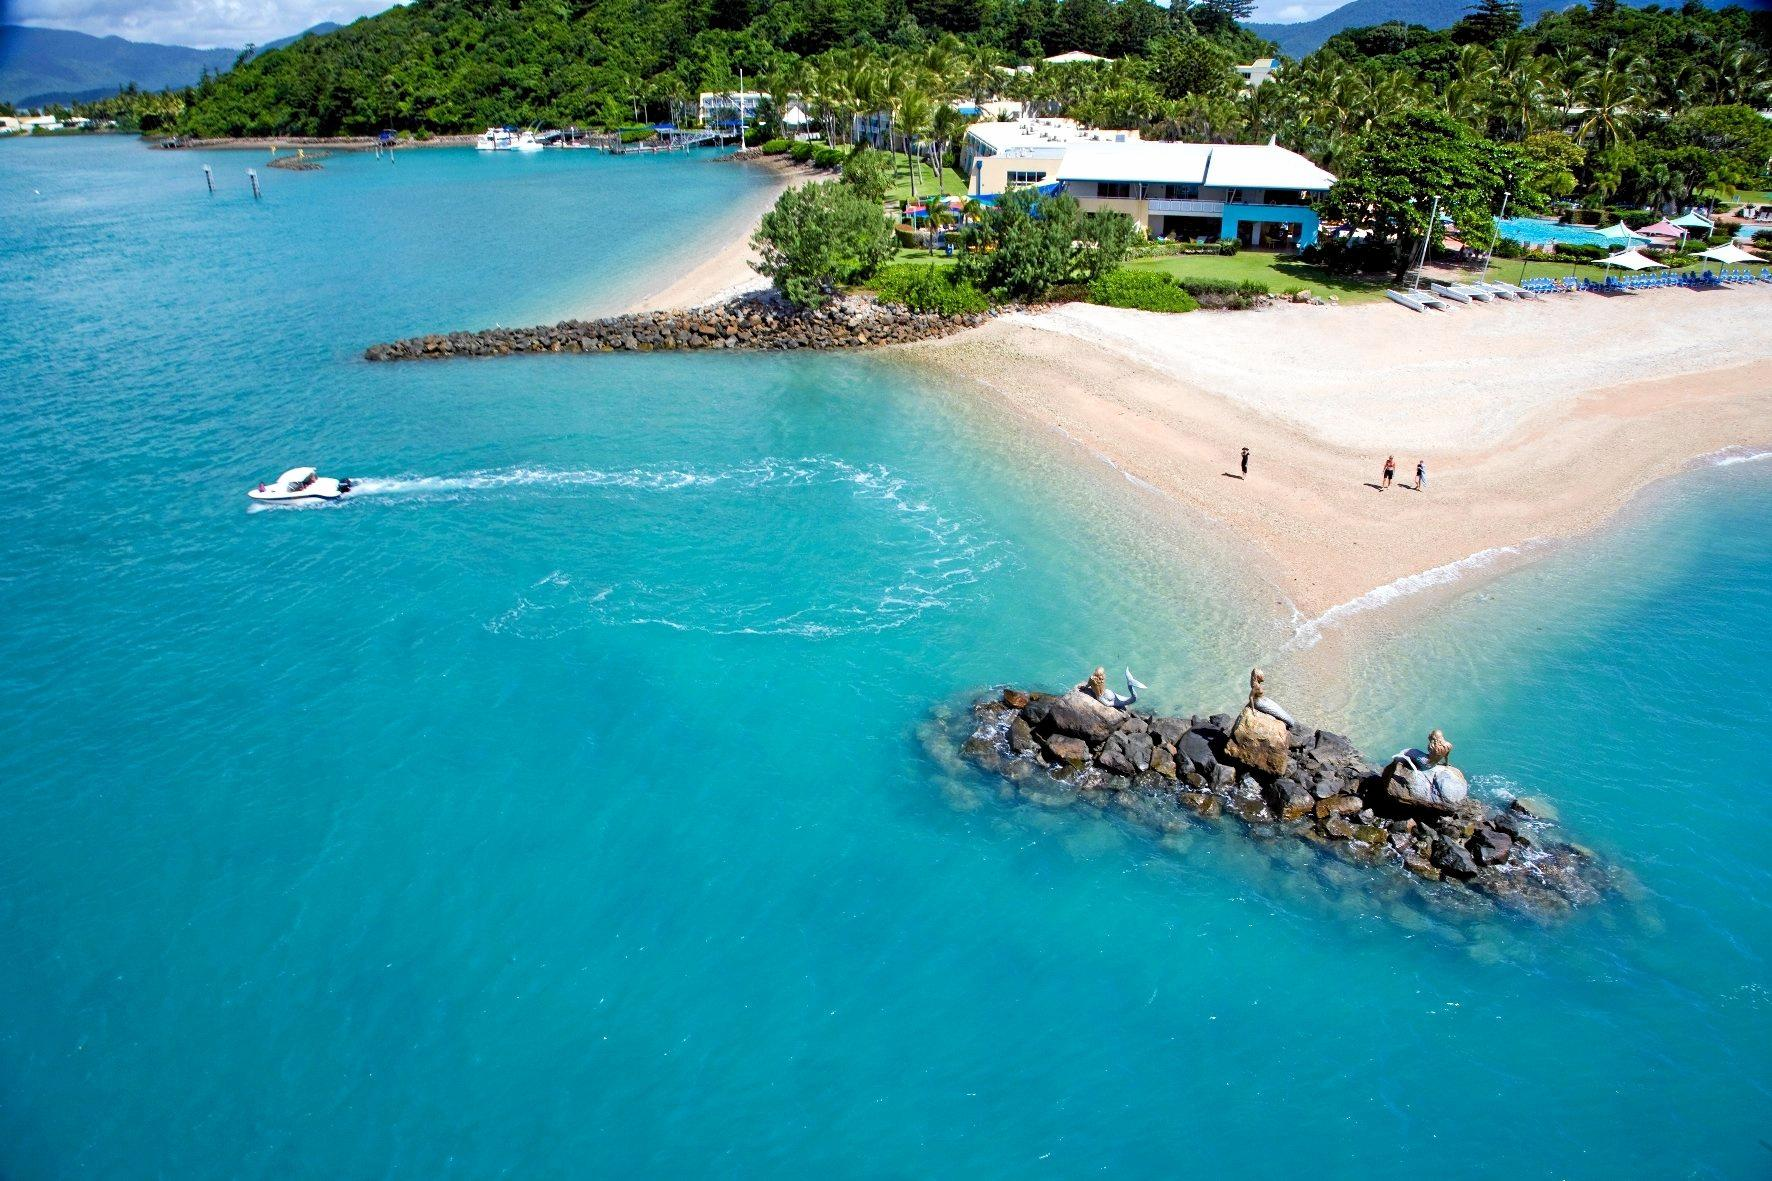 Daydream Island has a $50 million re-development plan in the pipeline.